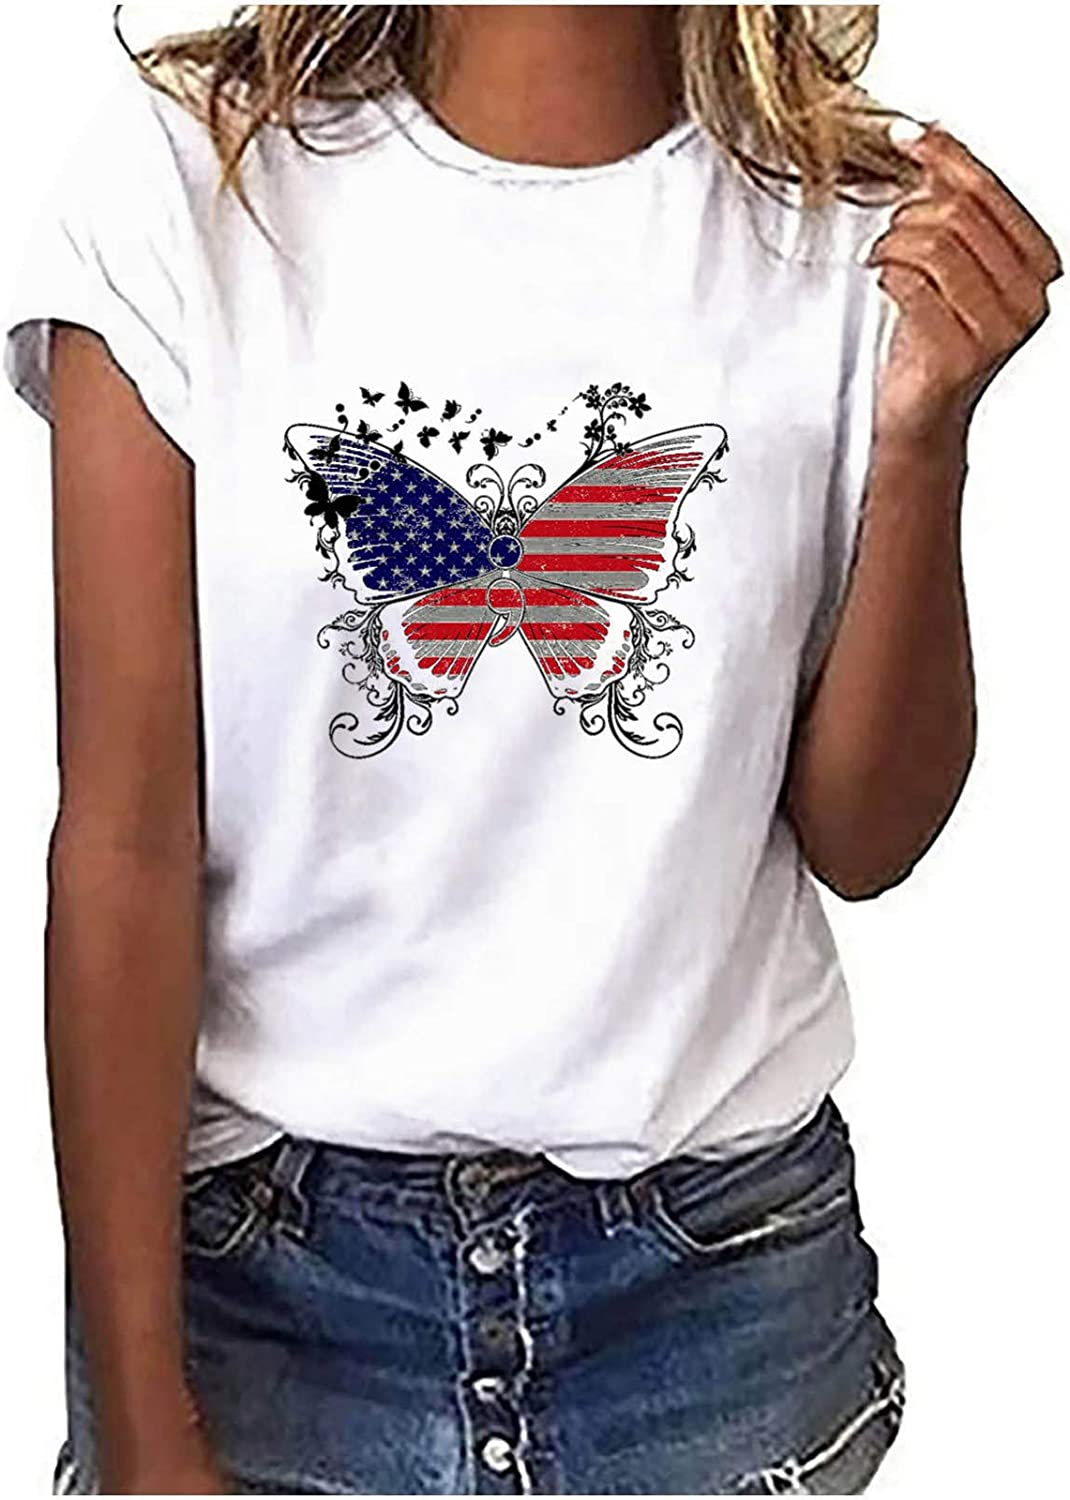 VEKDONE Women American Flag Cat Paw Print USA T-Shirt 4th of July Independence Day Patriotic Funny Graphic Tees Tops